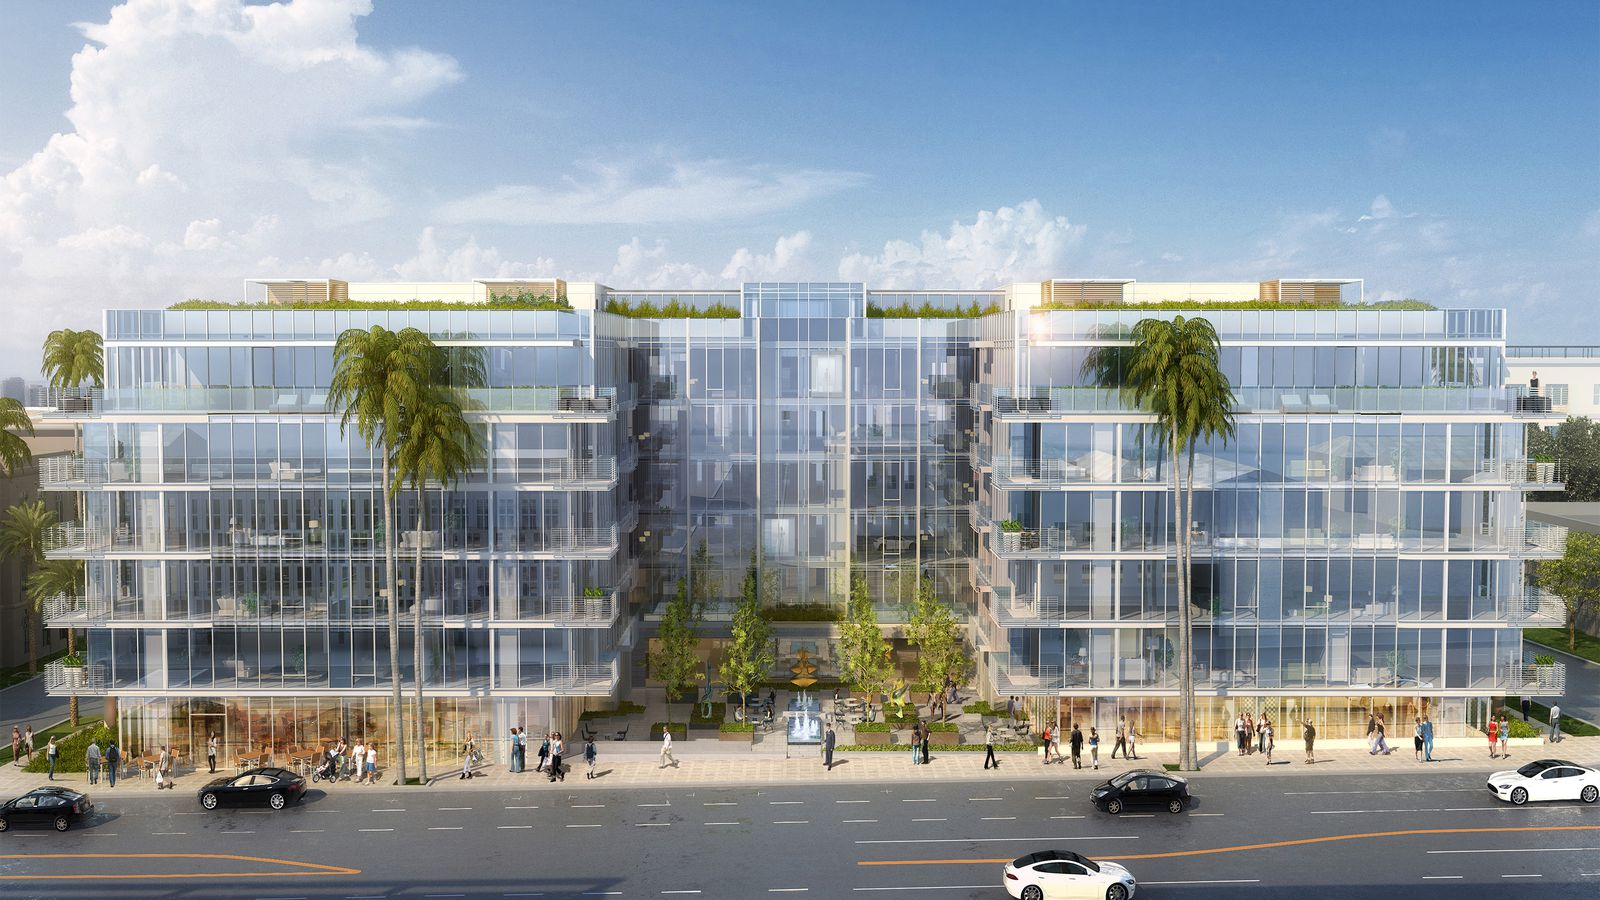 New apartments are rare in beverly hills new plans would for Apartments for sale beverly hills